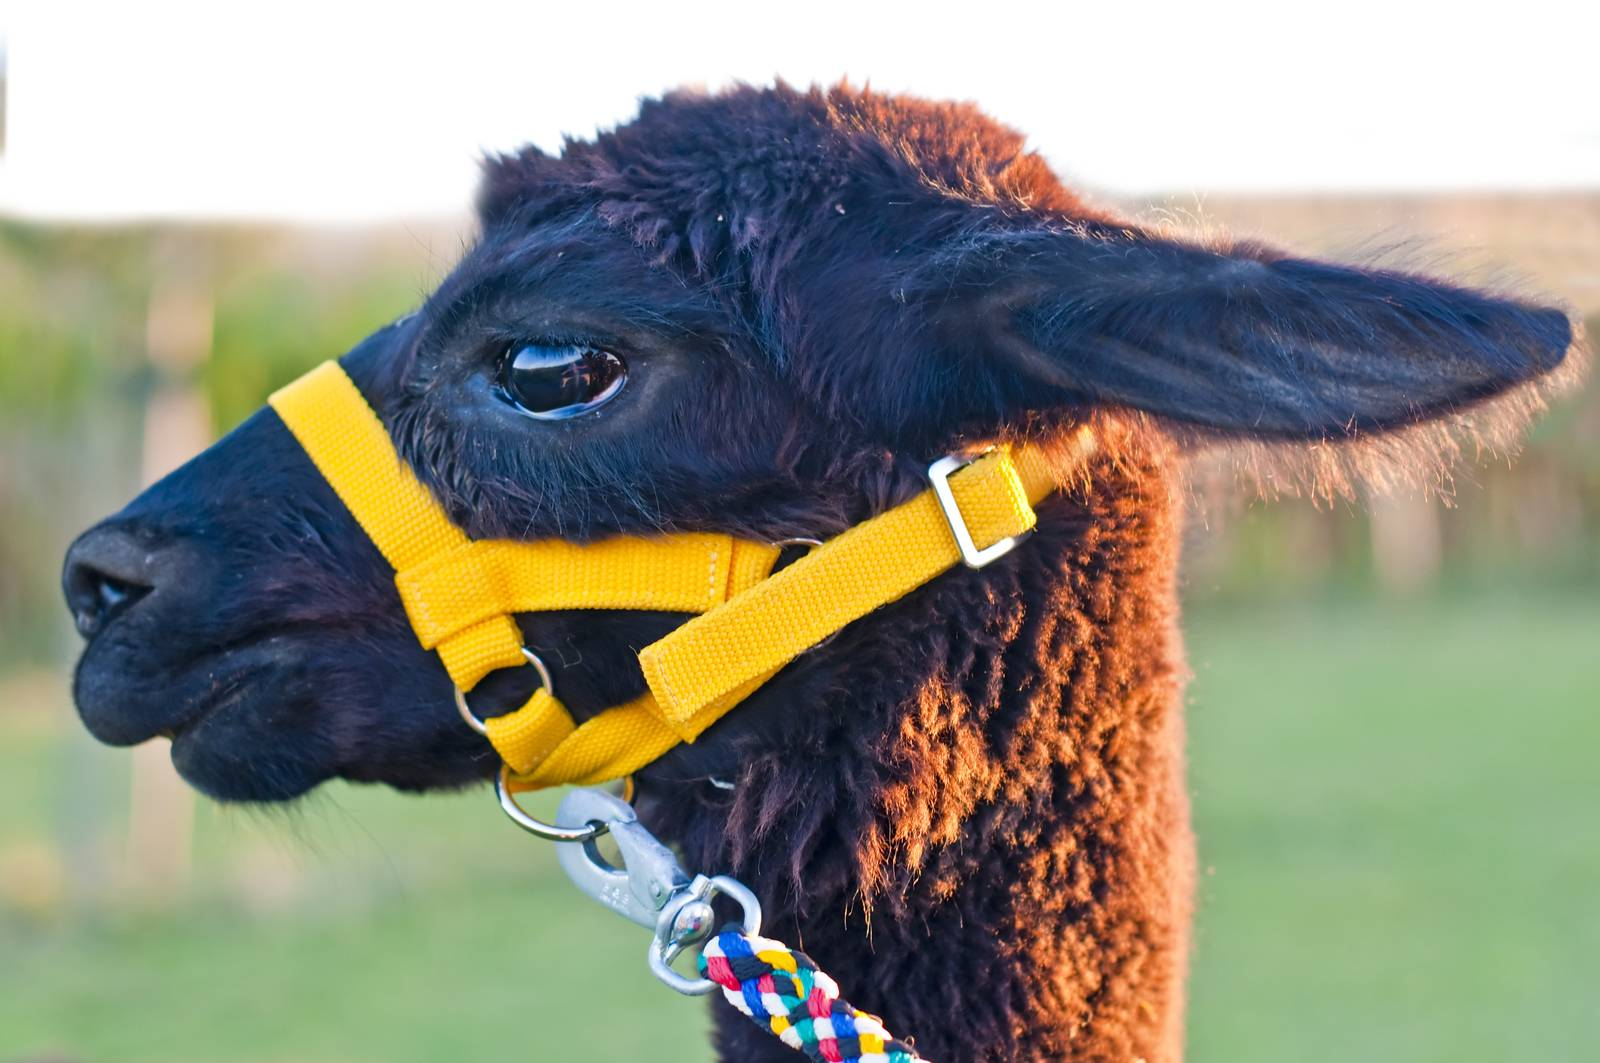 AAT, assisted animal therapy, adorable, alpaca, America, Andes - D34298252